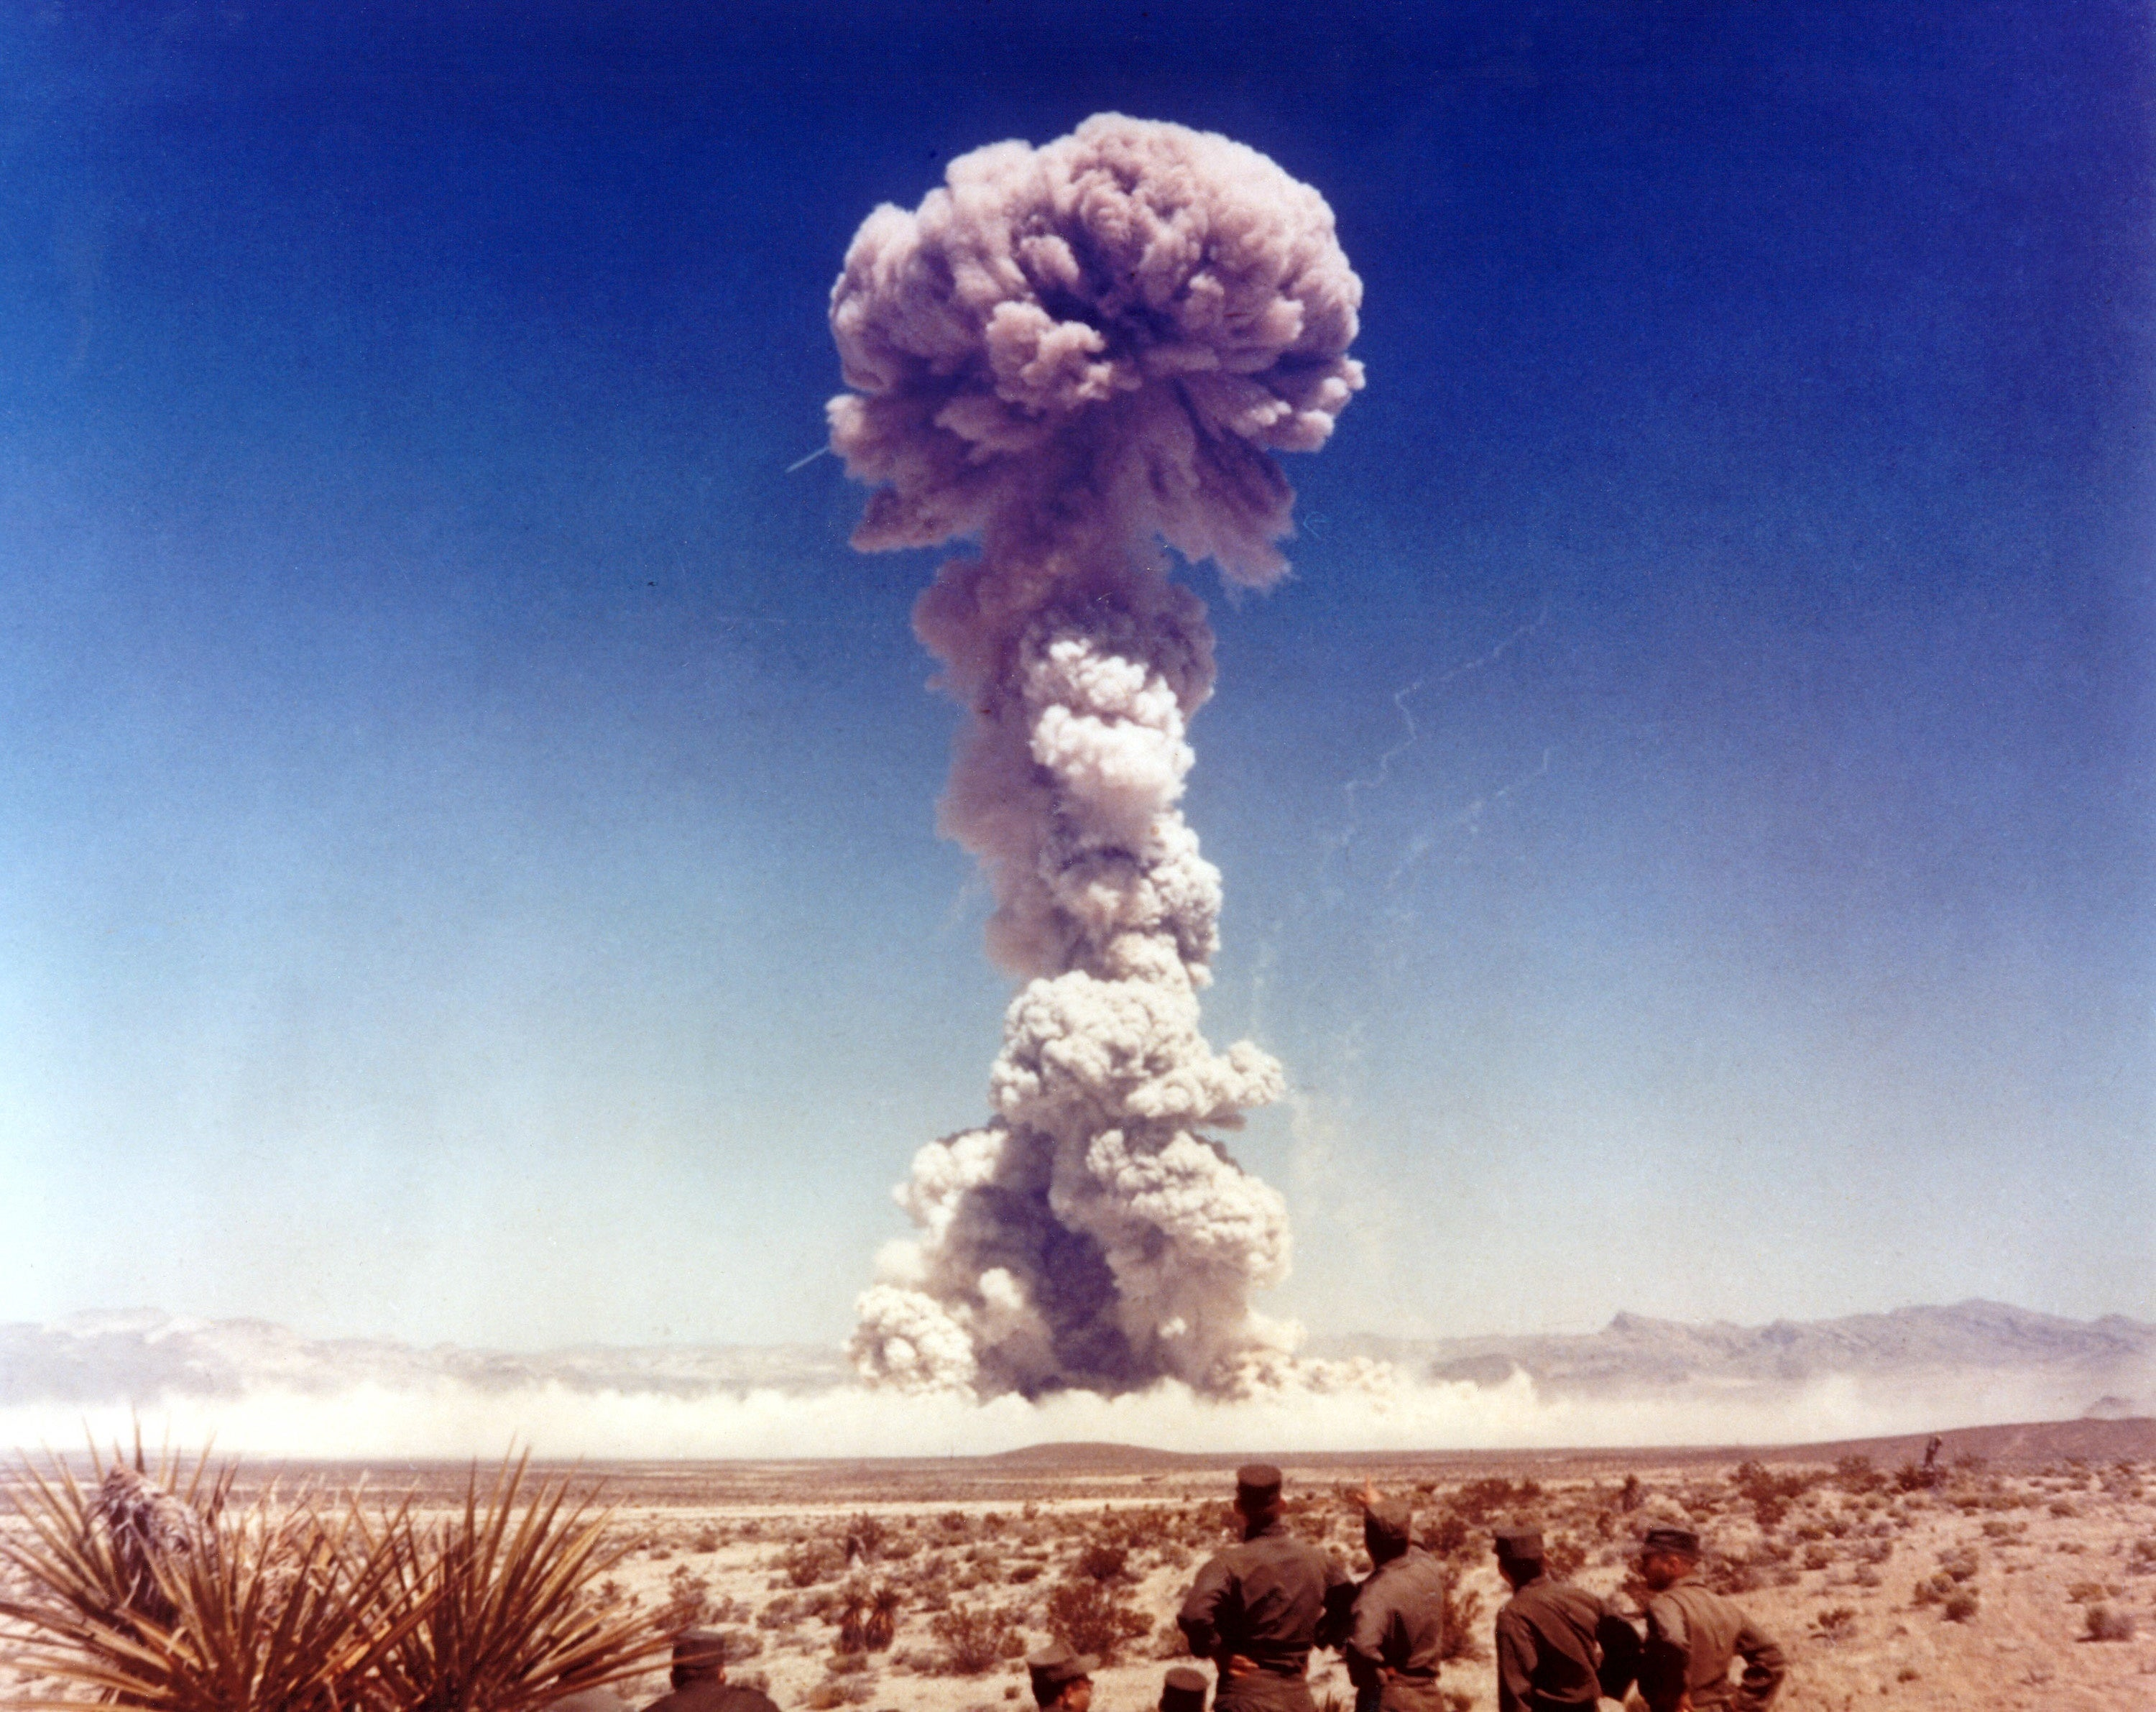 How Do You Study Nuclear Bombs When You Can't Use Them Anymore?